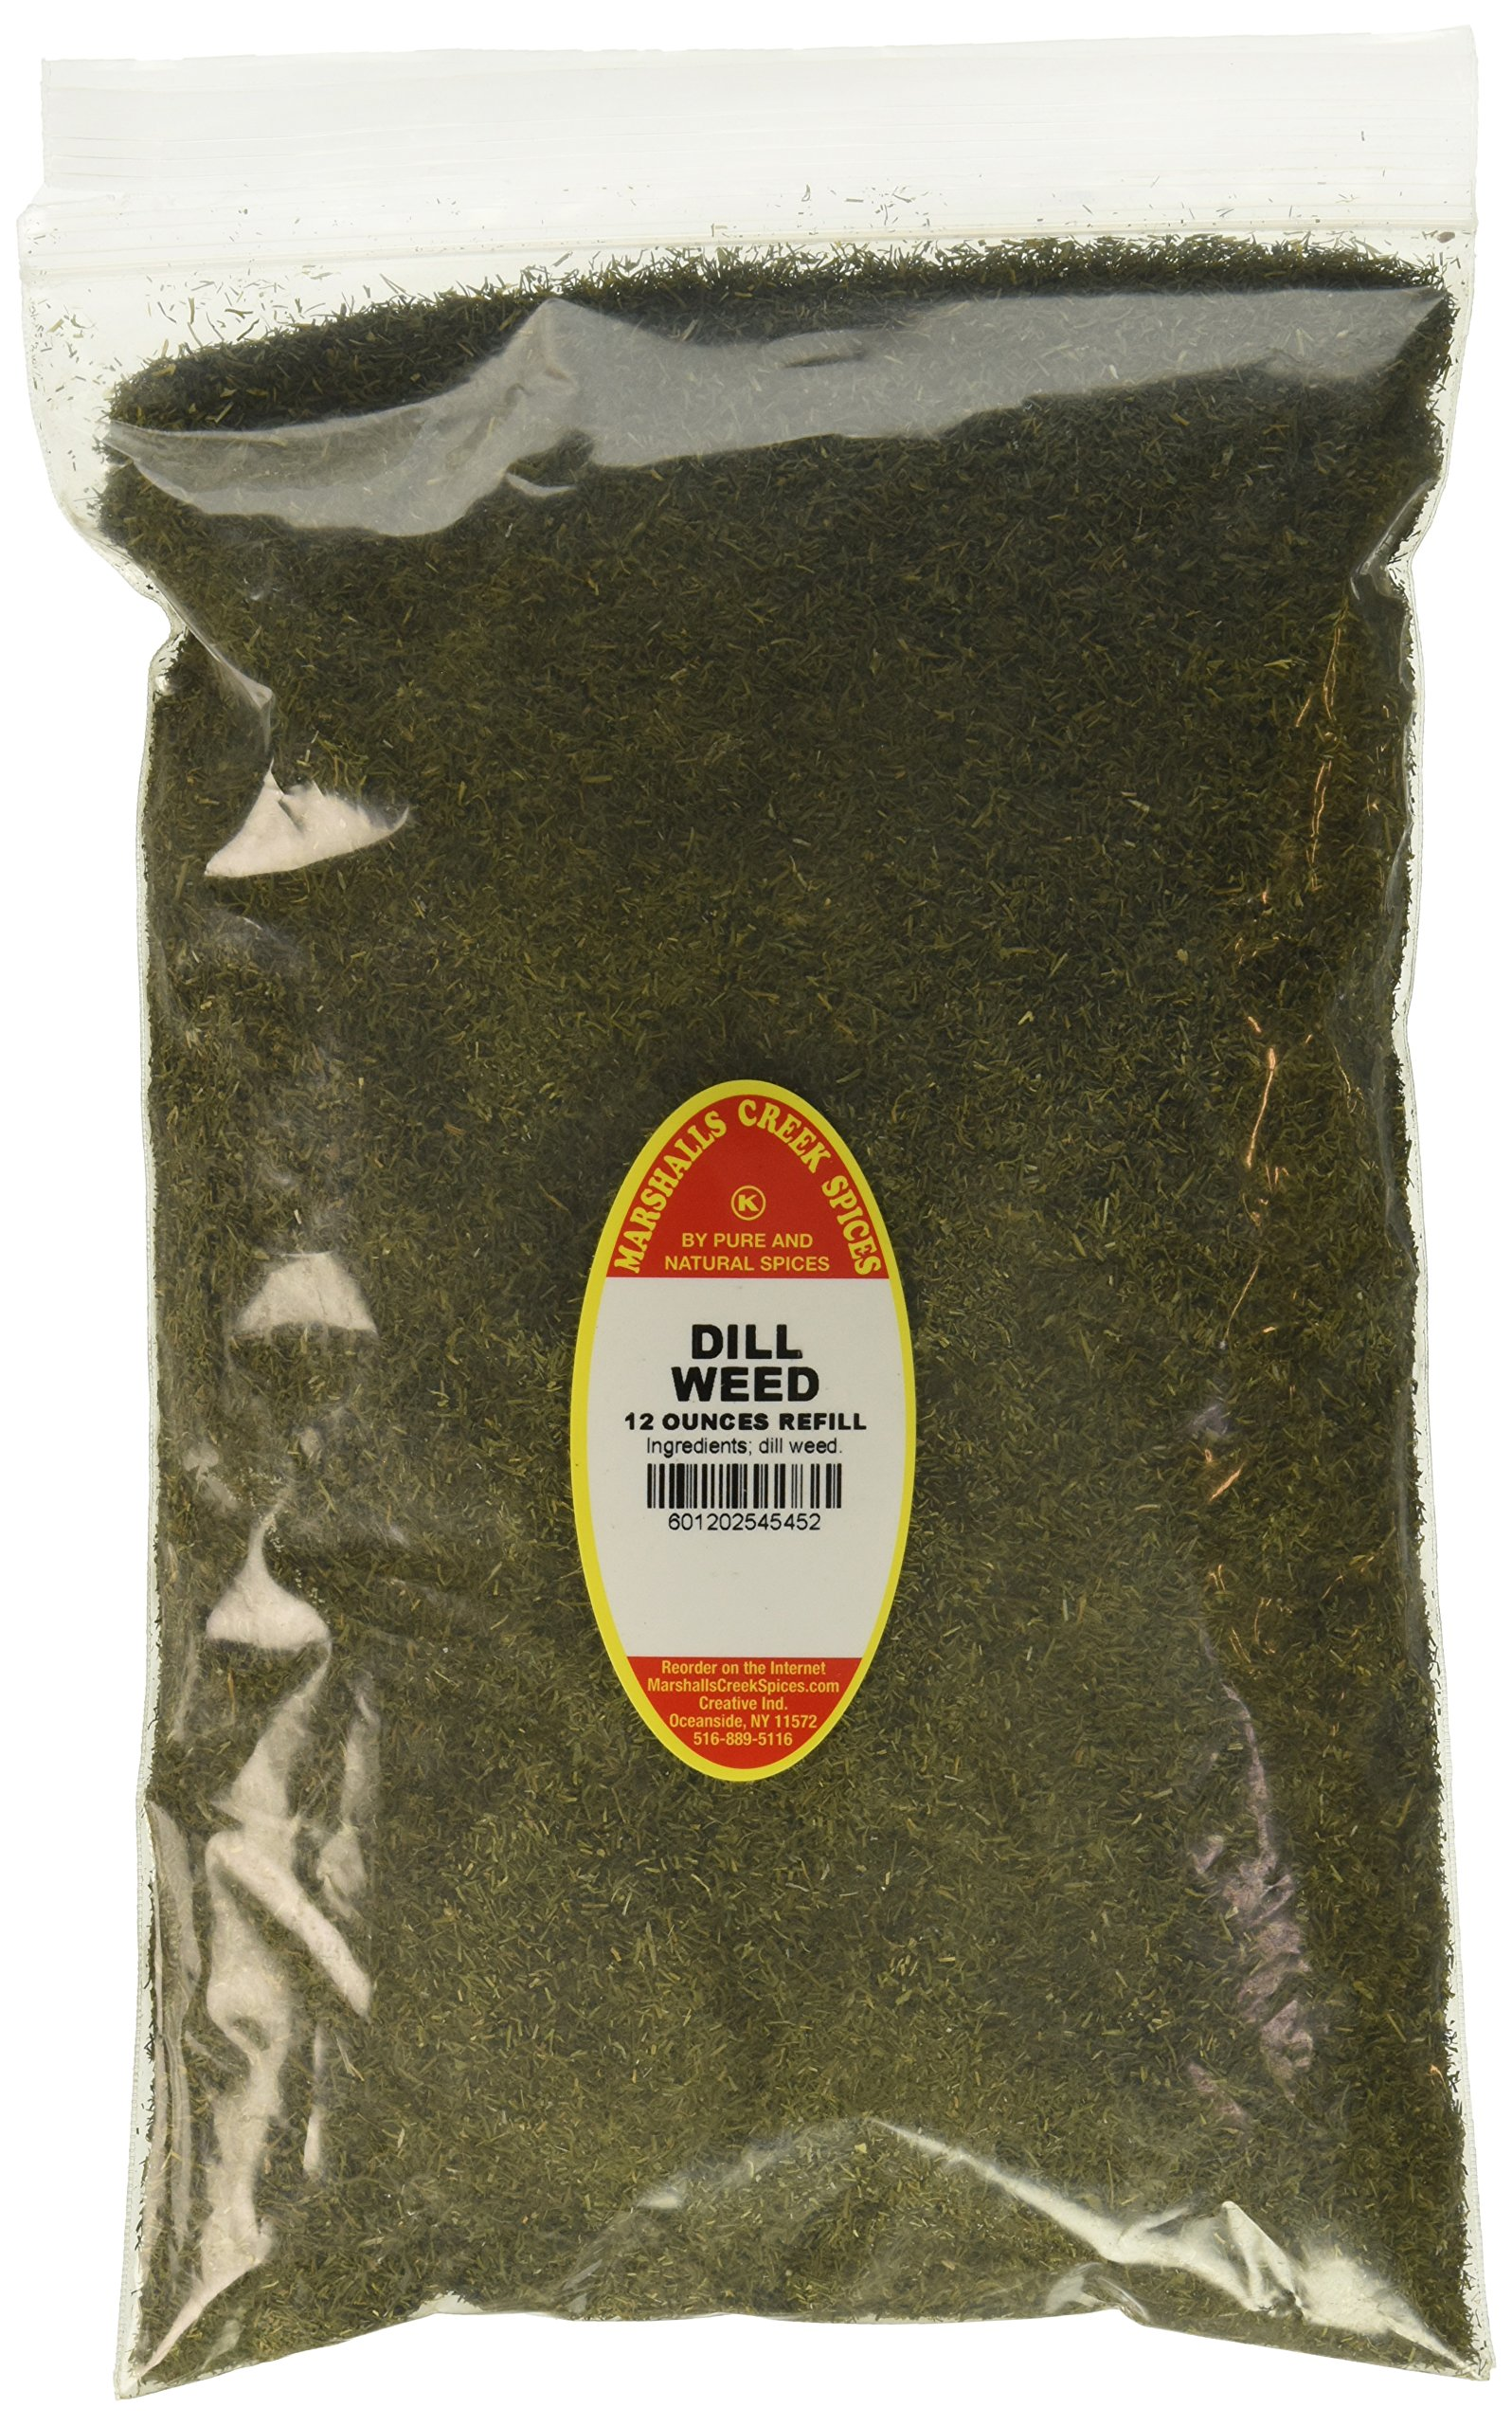 Marshalls Creek Spices Family Size Kosher Dill Weed Refill, 12 Ounce